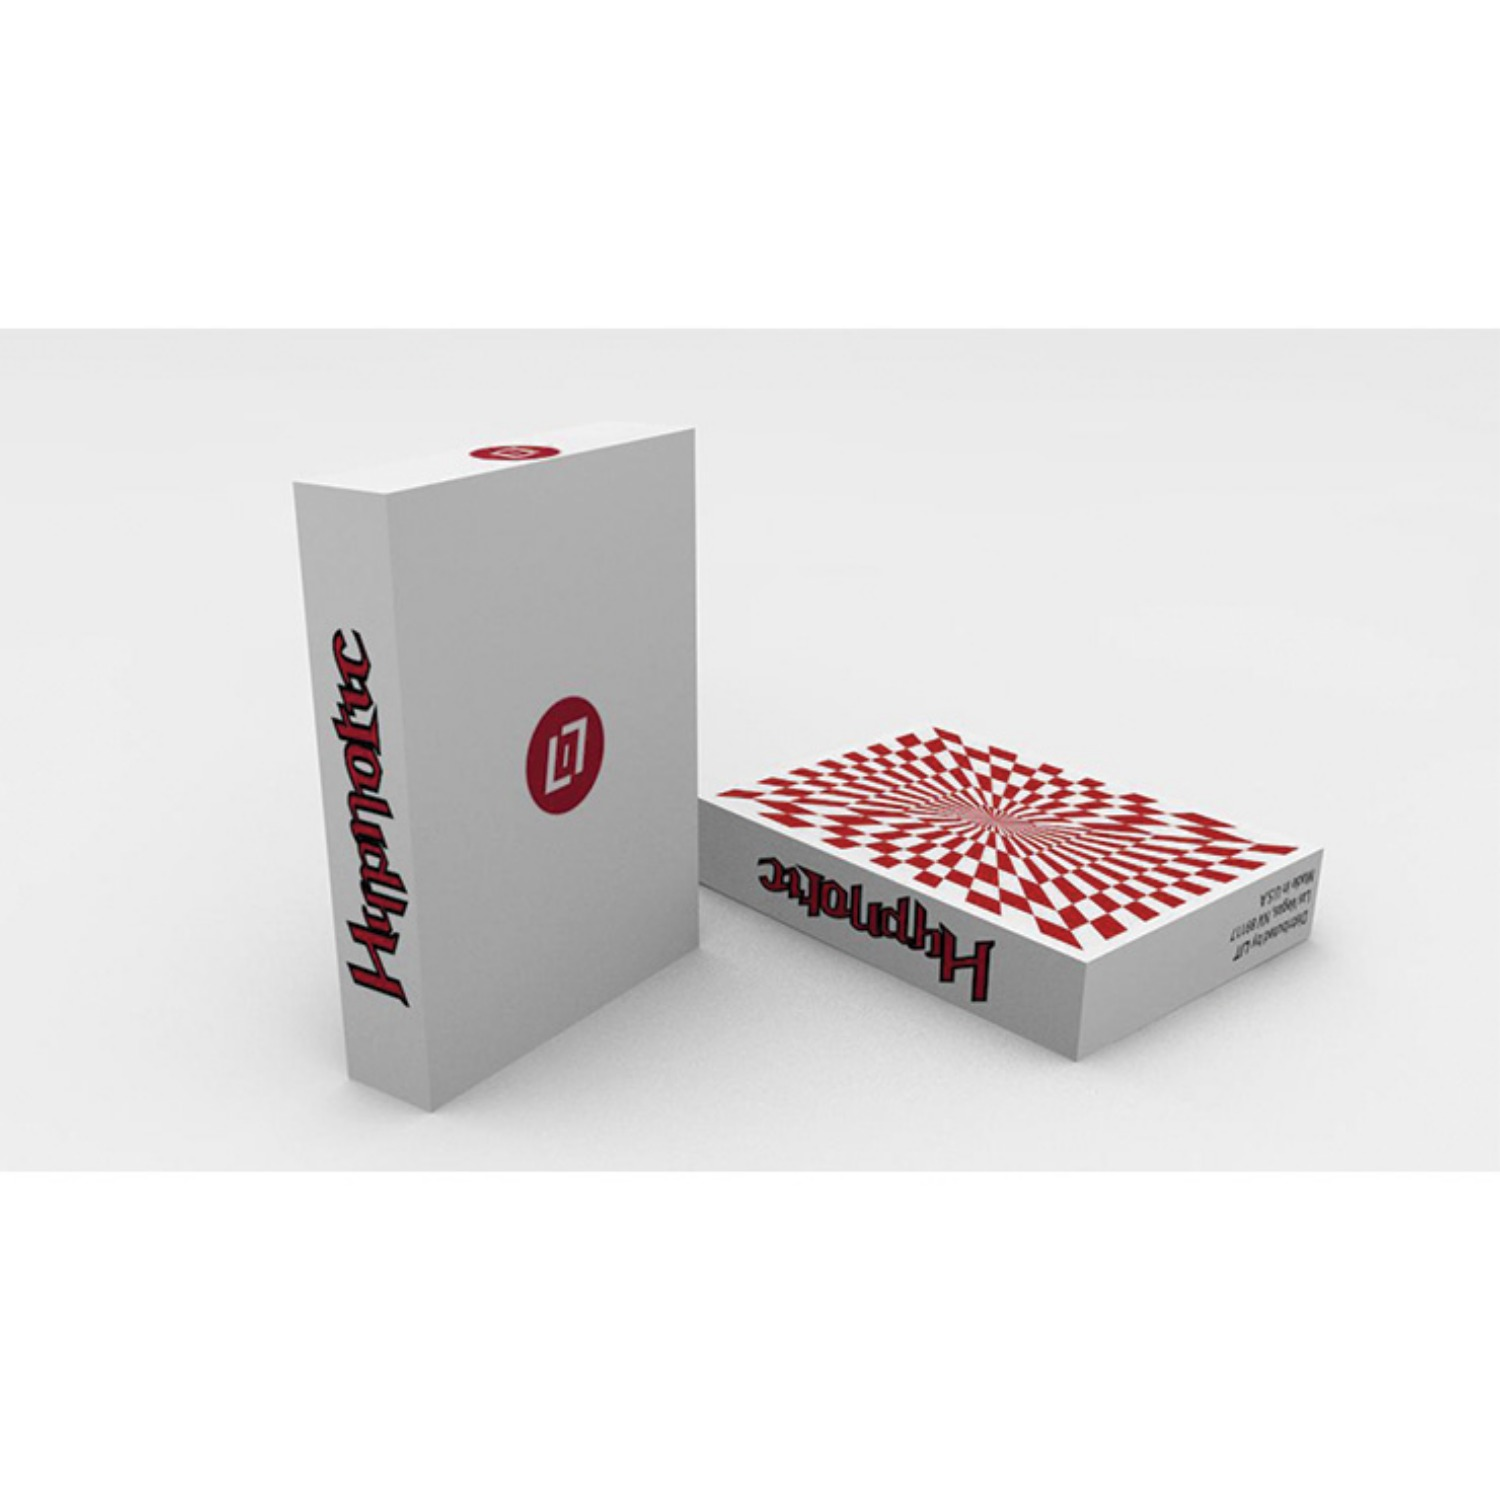 [힙노틱]Hypnotic Playing Cards by Michael McClure